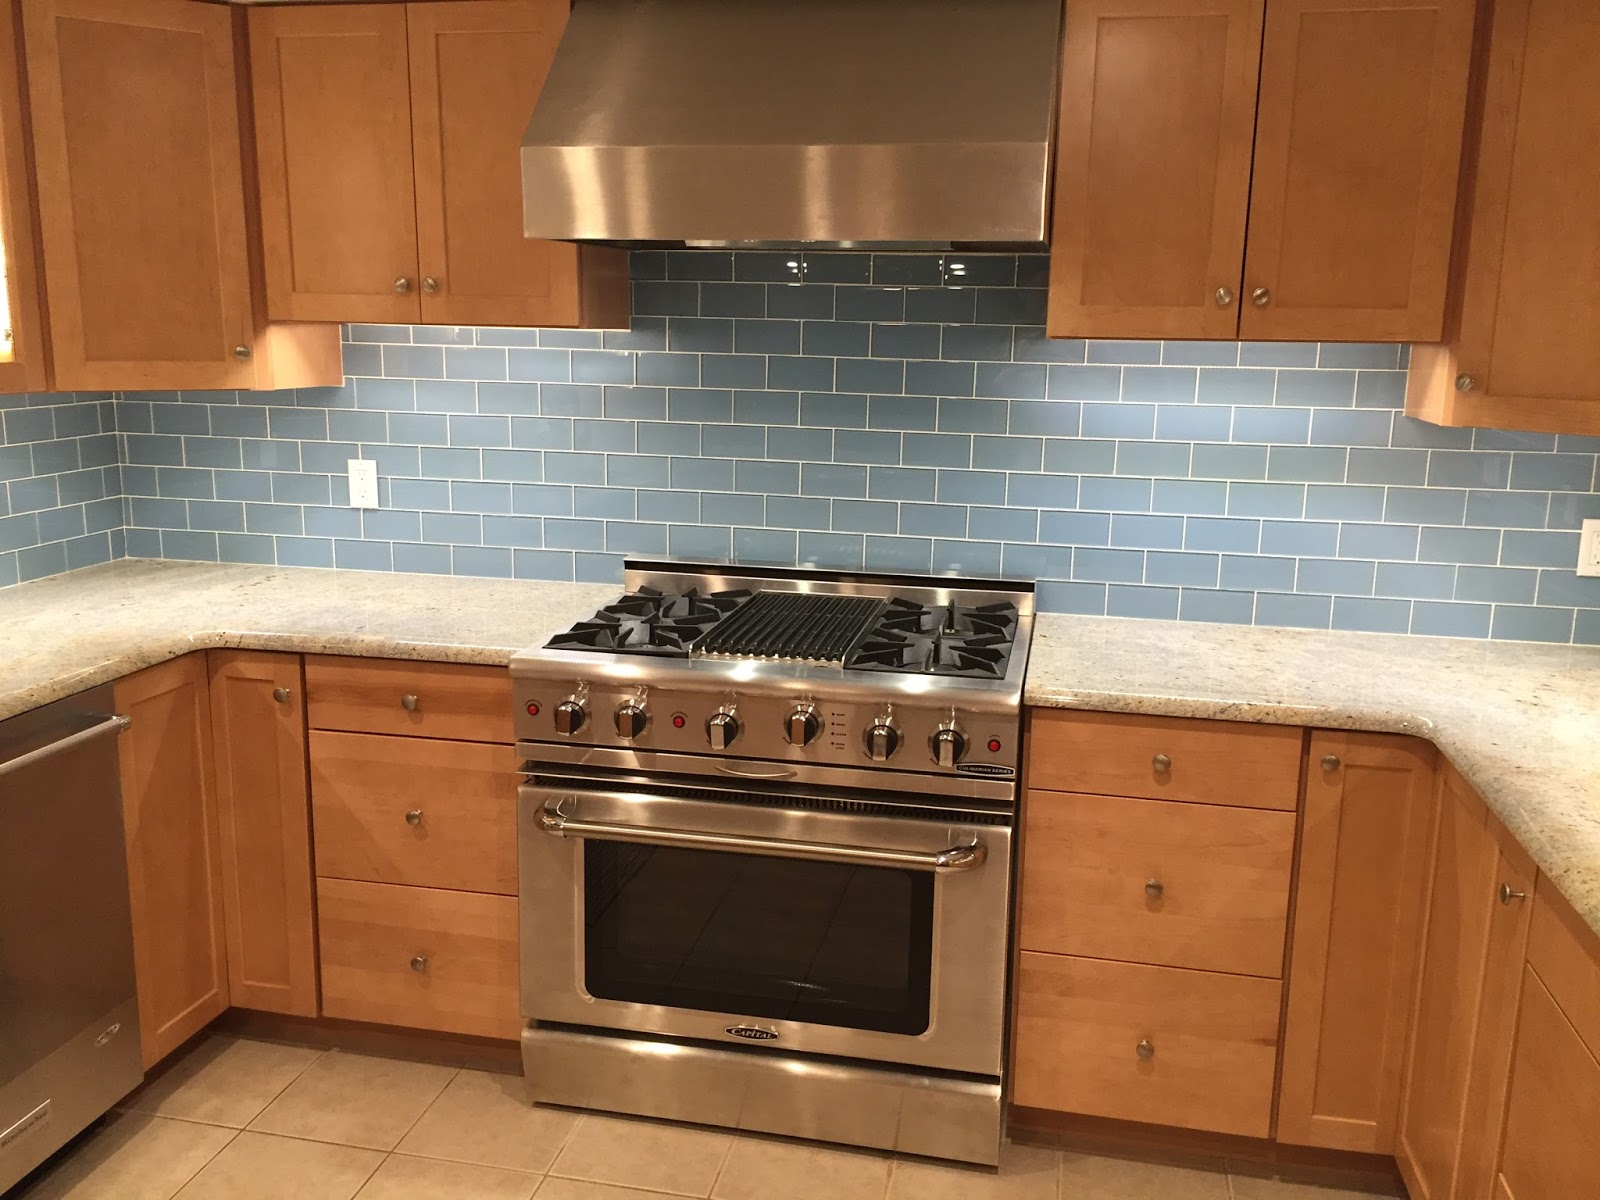 Quardecor Before And After Kitchen Makeover Blue Glass